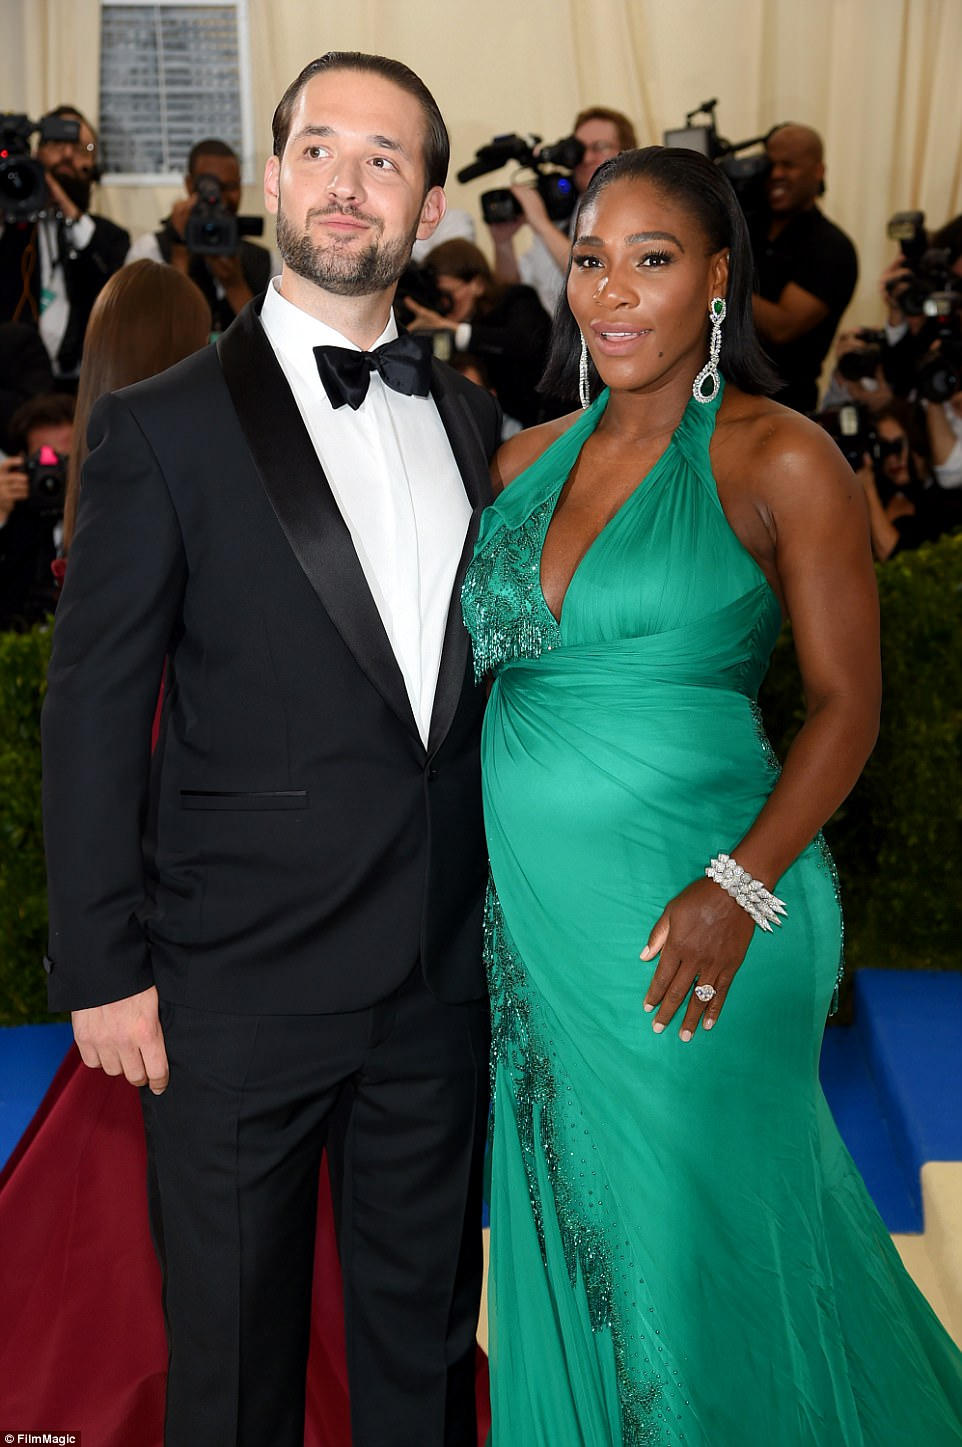 Serena Williams Marries A Millionaire In A Beauty and The Beast ...